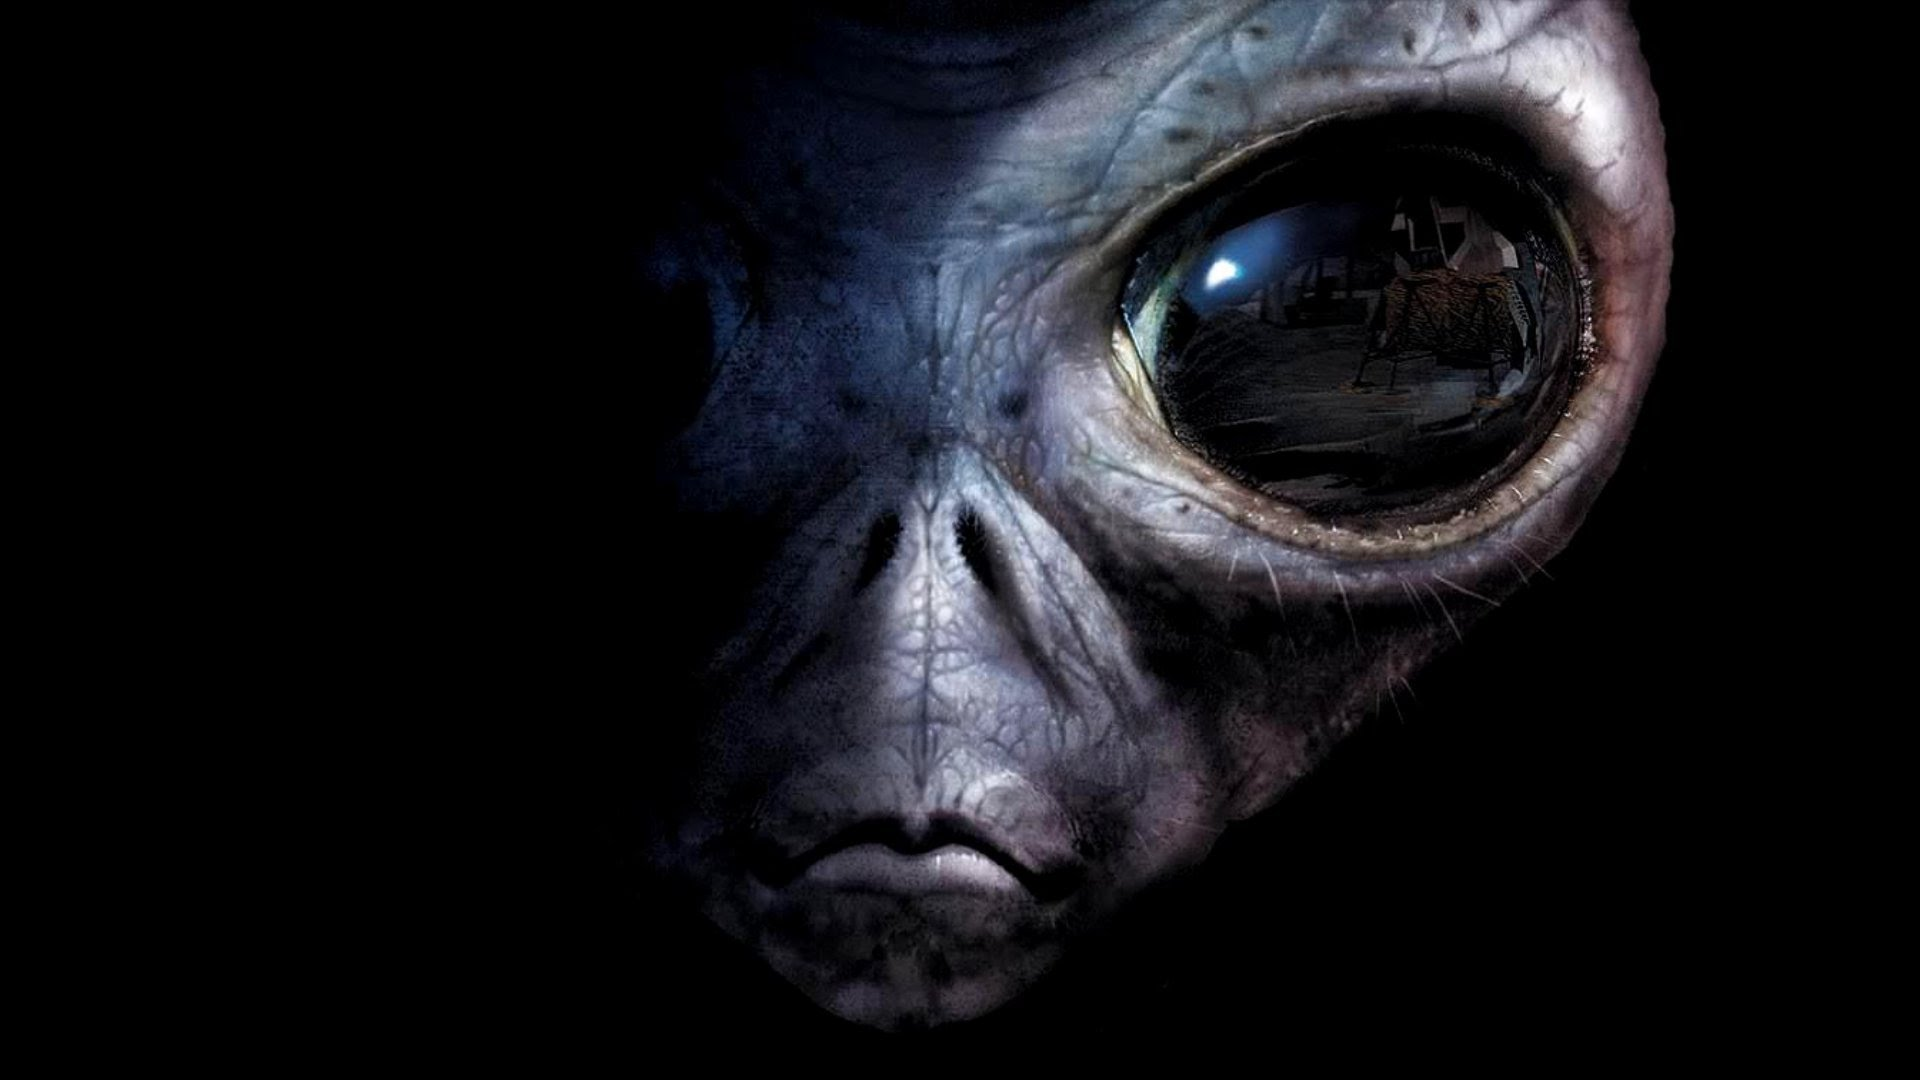 http://significadosdelossuenos.net/wp-content/uploads/2017/02/Qu%C3%A9-significa-so%C3%B1ar-con-extraterrestres.jpg